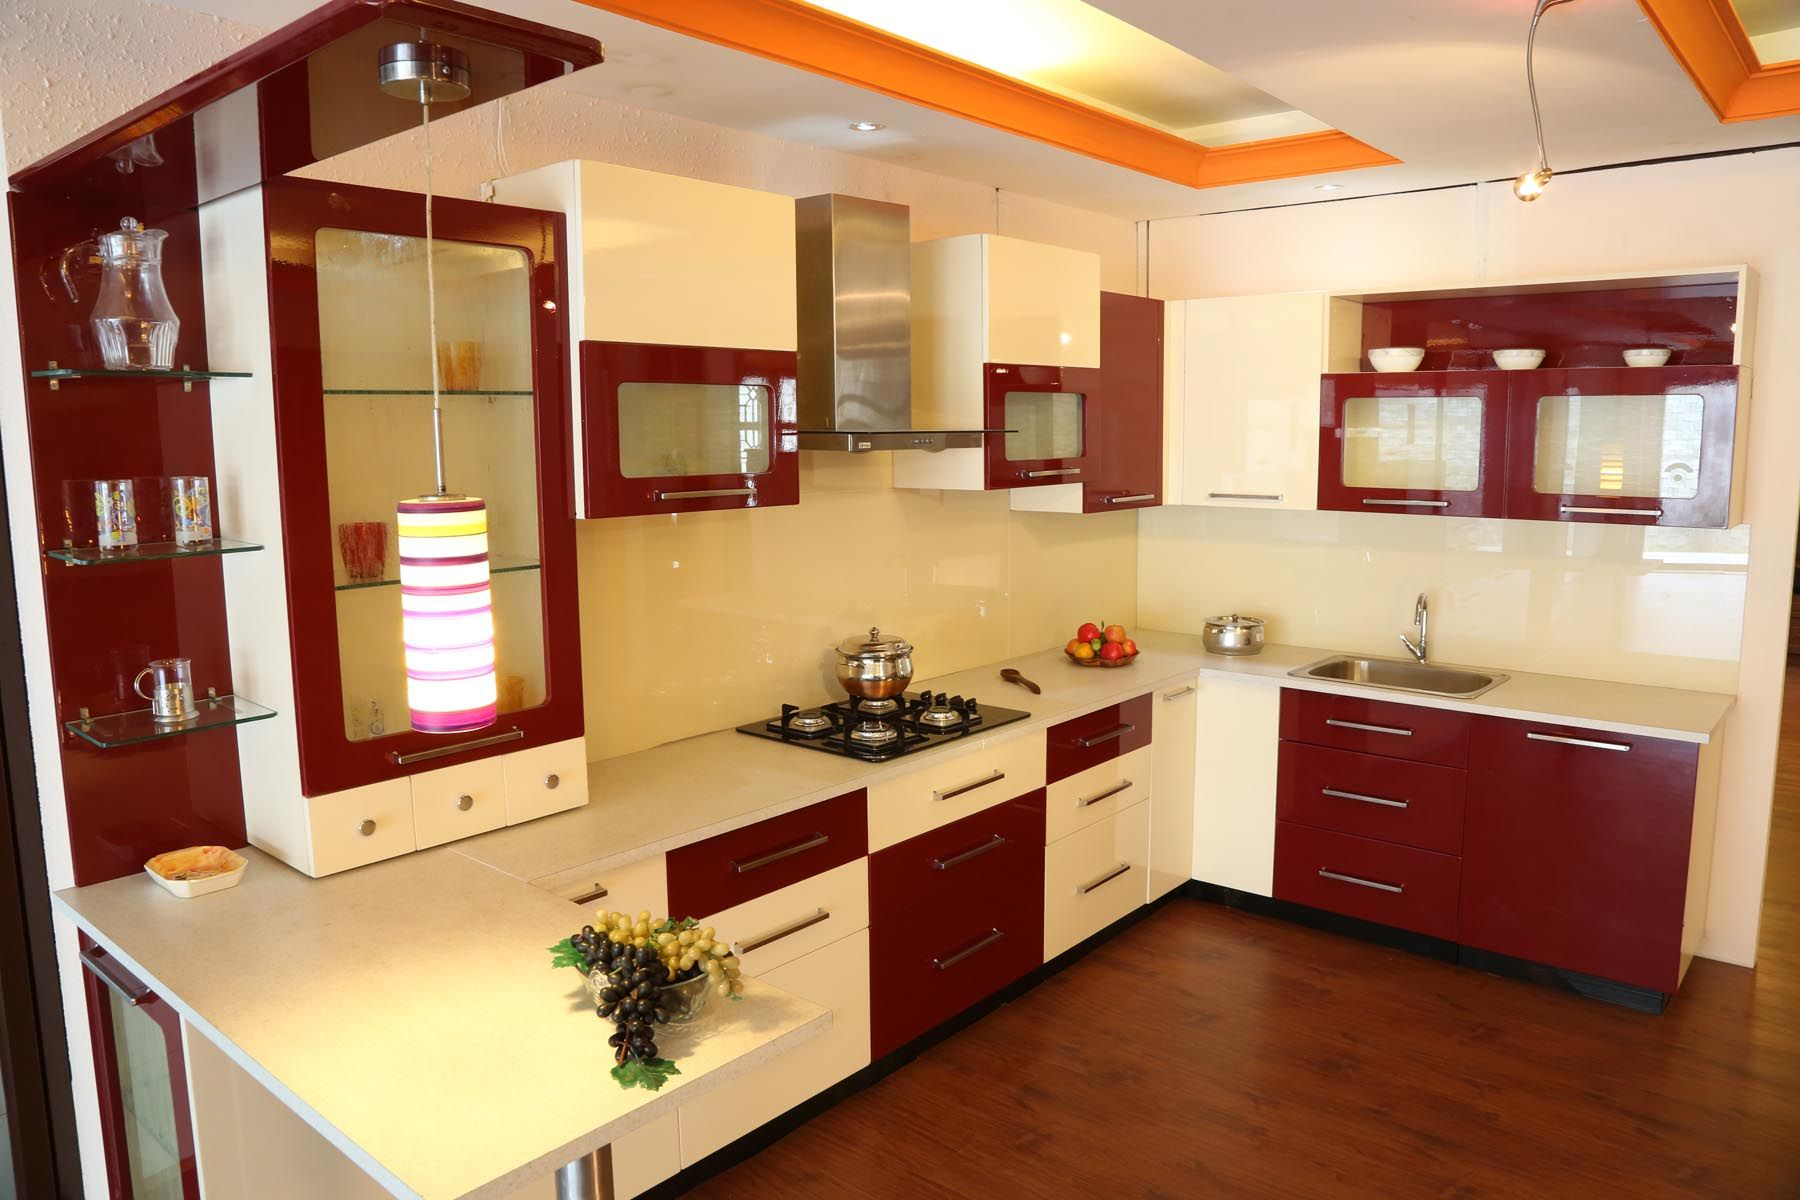 Impressive Kitchen Space With Red And White Interior And Wooden Magnificent Indian Kitchen Designs 2018